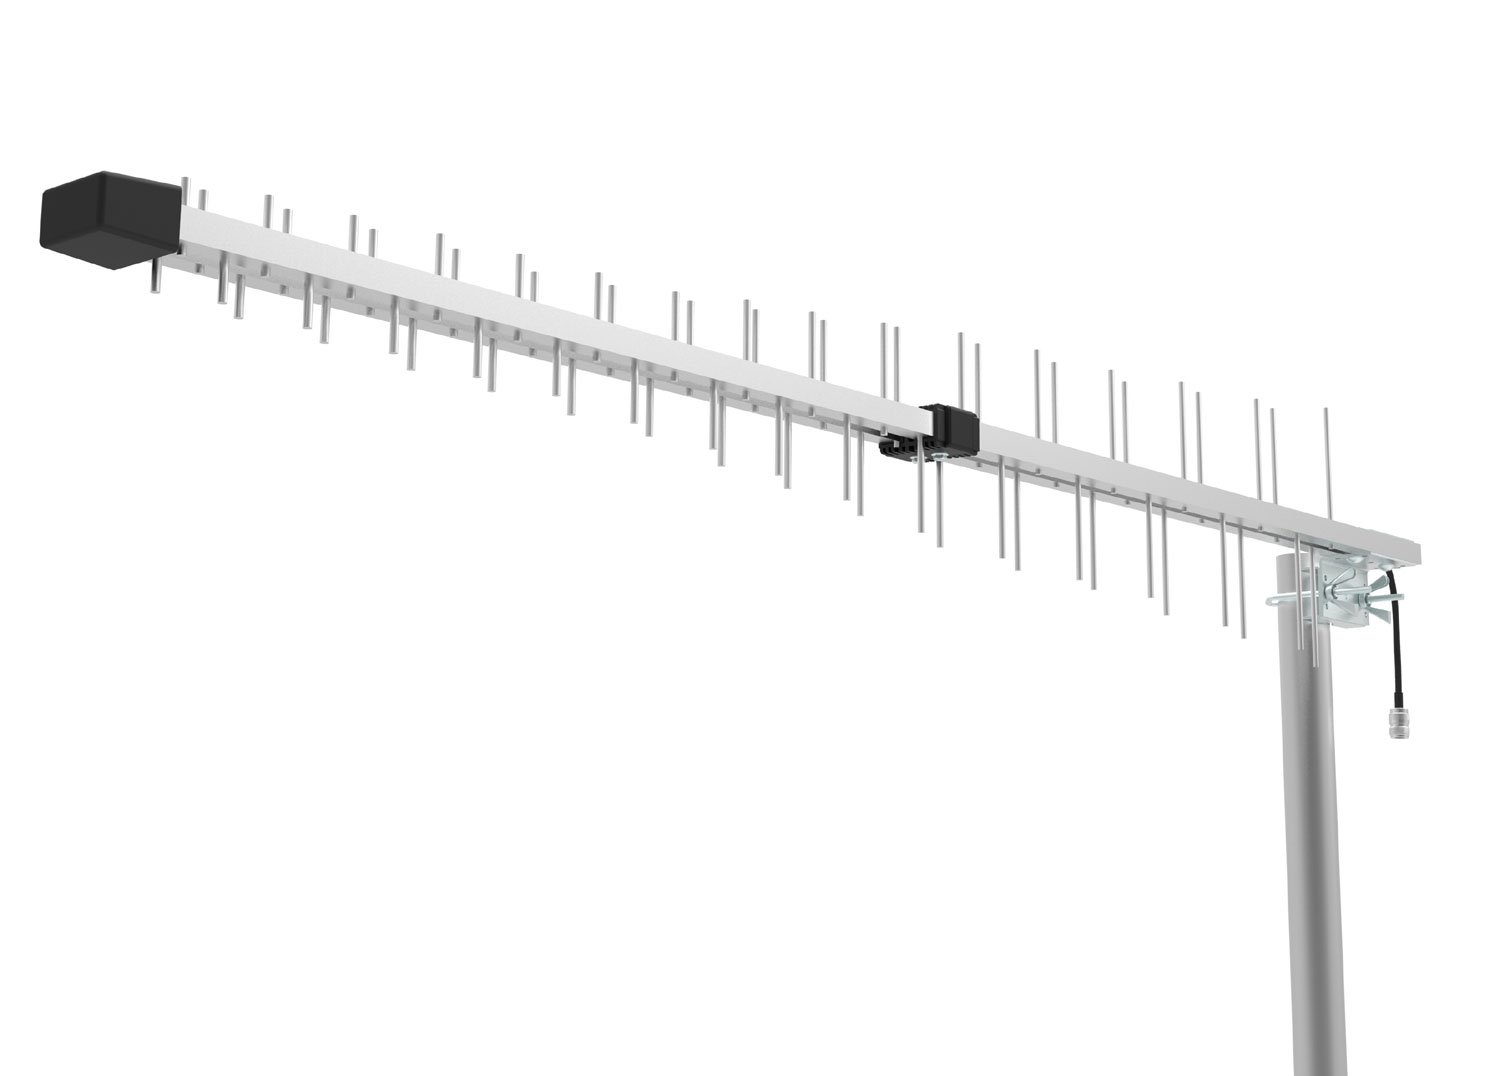 Log Periodic Directional Yagi Antenna 15dbi Gain for 3G 4G LTE XLTE AWS IDEN PCS 698MHz-2700MHz Wide Band Full Band by maxmostcom